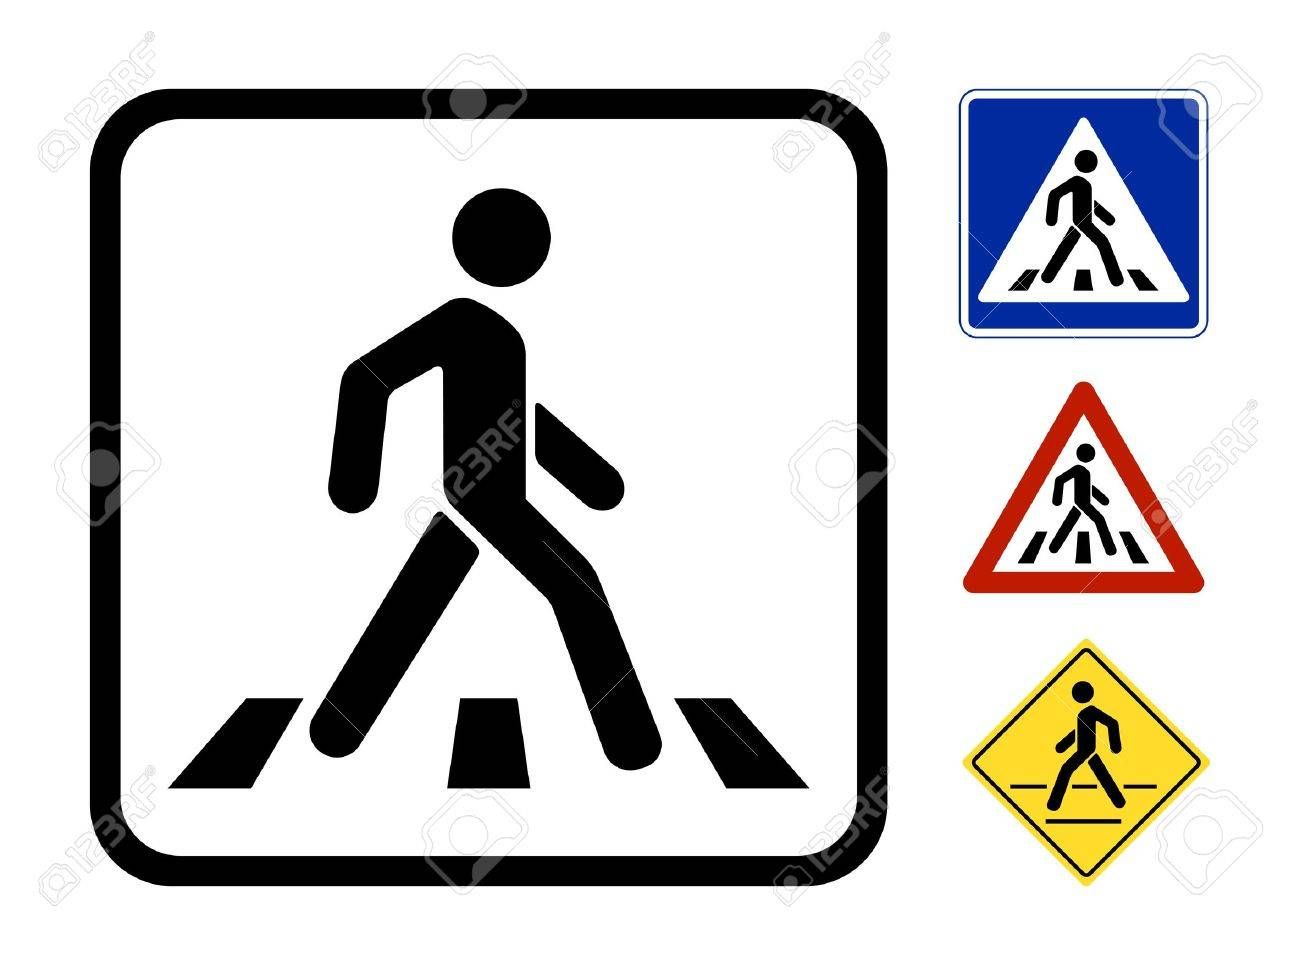 Pedestrian Symbol Vector Illustration isolated on white background Stock Vector - 21576547